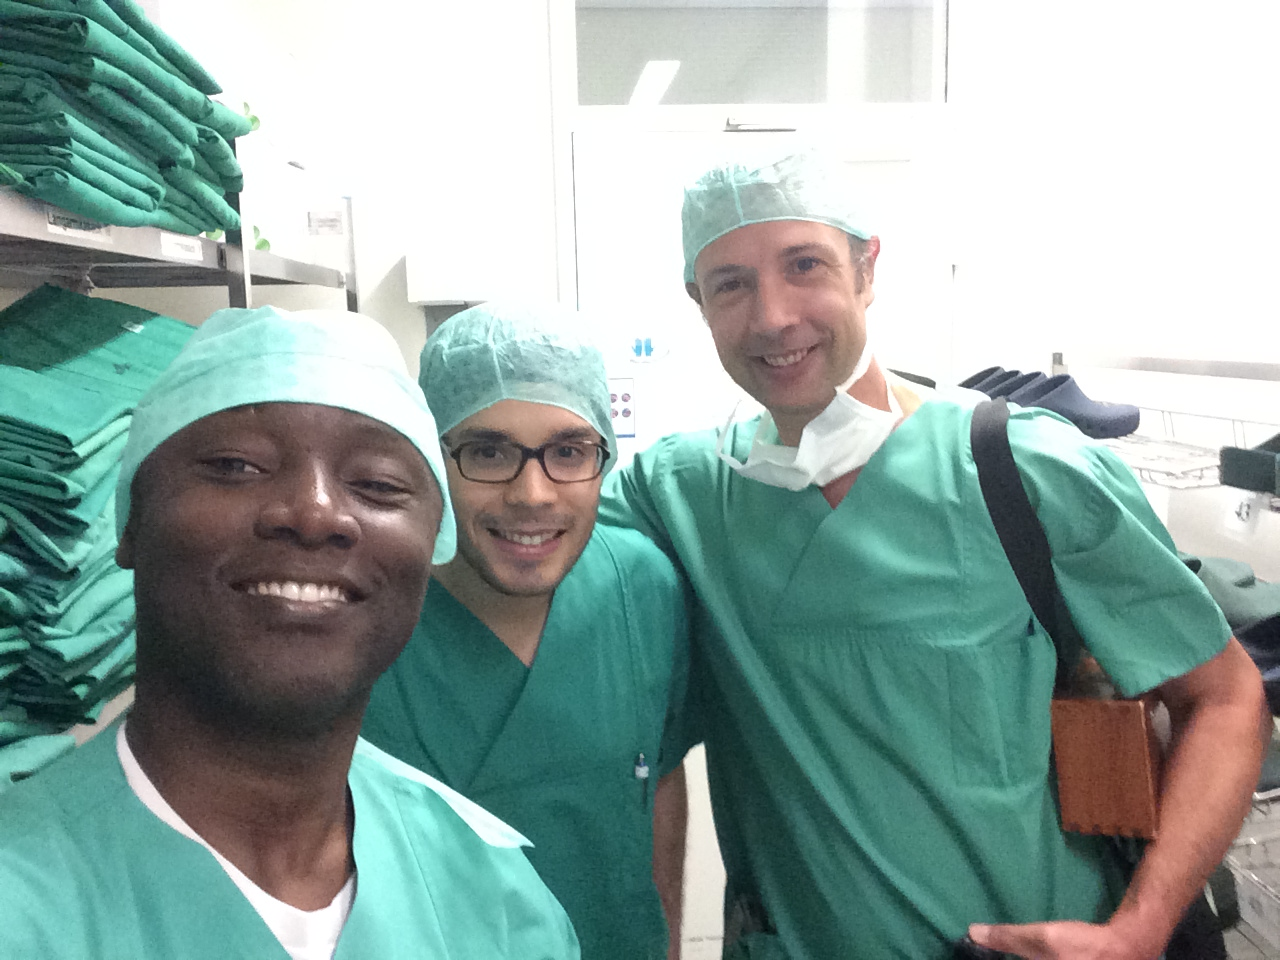 As part of FSS effort to build surgical capacity in Africa, Drs Boahene and Gassner have teamed up. Here the get ready to perform a gracilis flap to restore smile in a patient born with no smile muscles